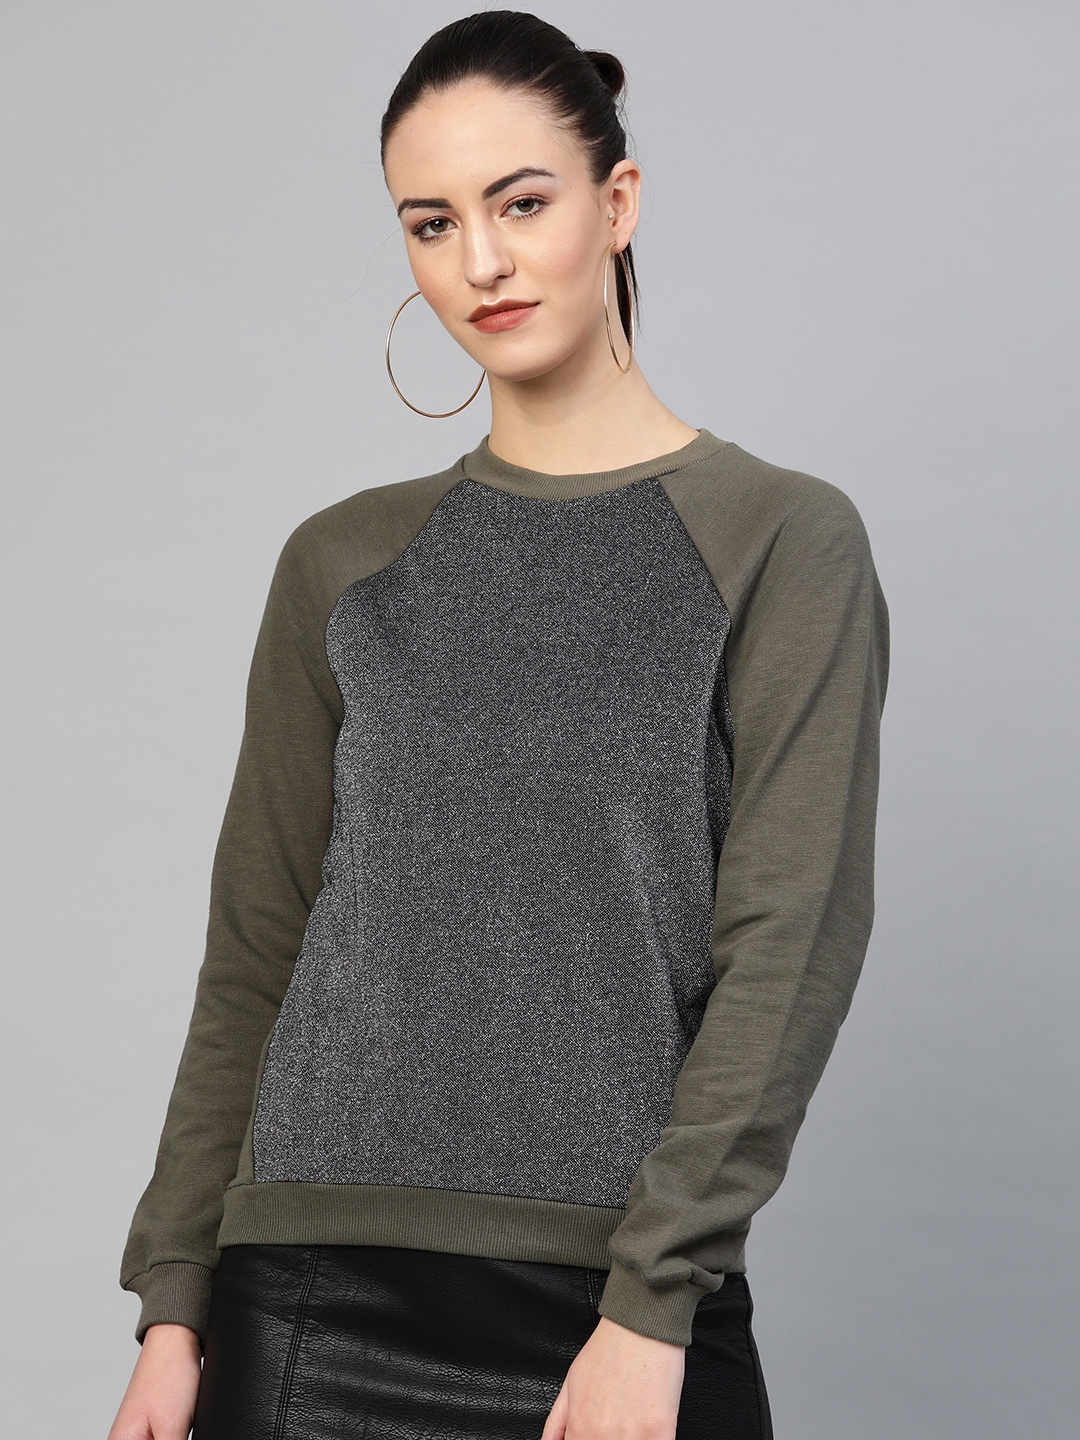 I AM FOR YOU Women Silver   Olive Green Solid Sweatshirt